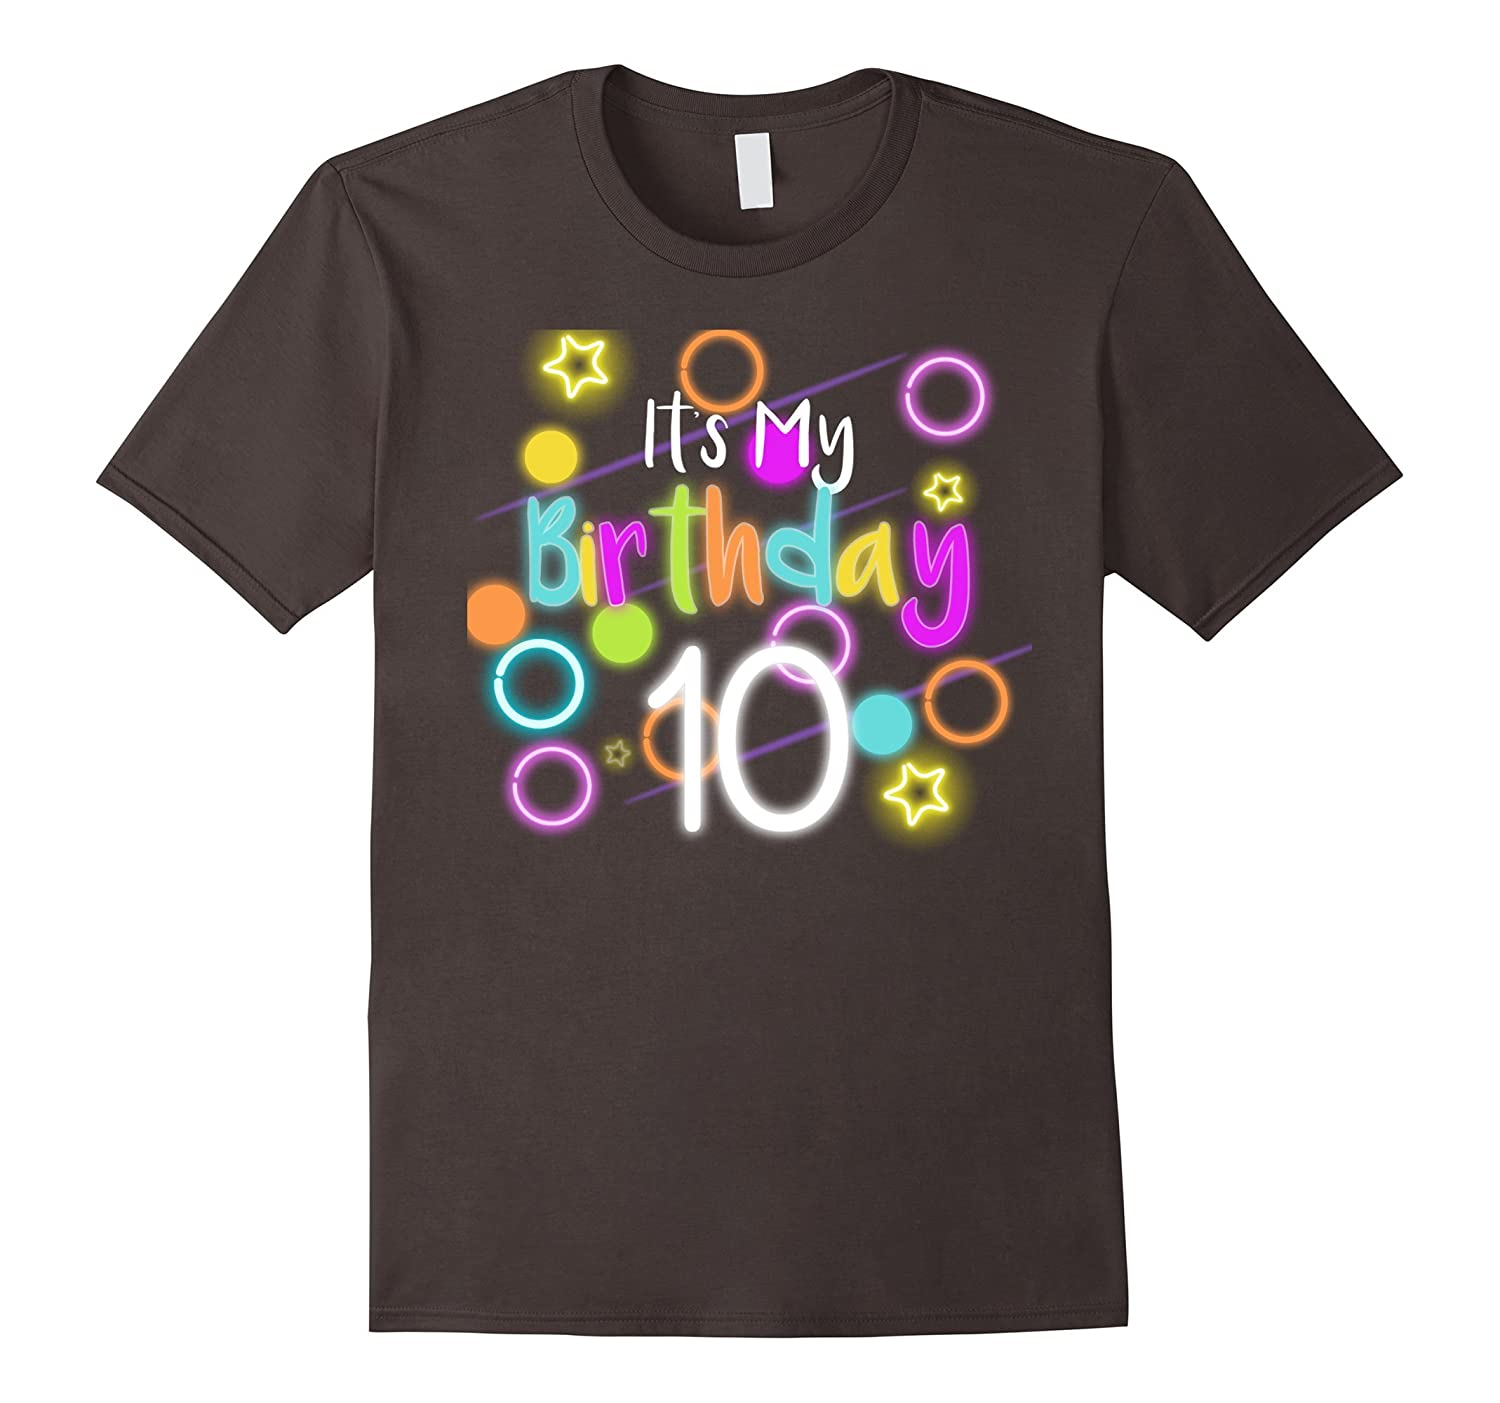 Glow Birthday 10th Neon T-shirt Funny Celebration Kids 80s-TJ